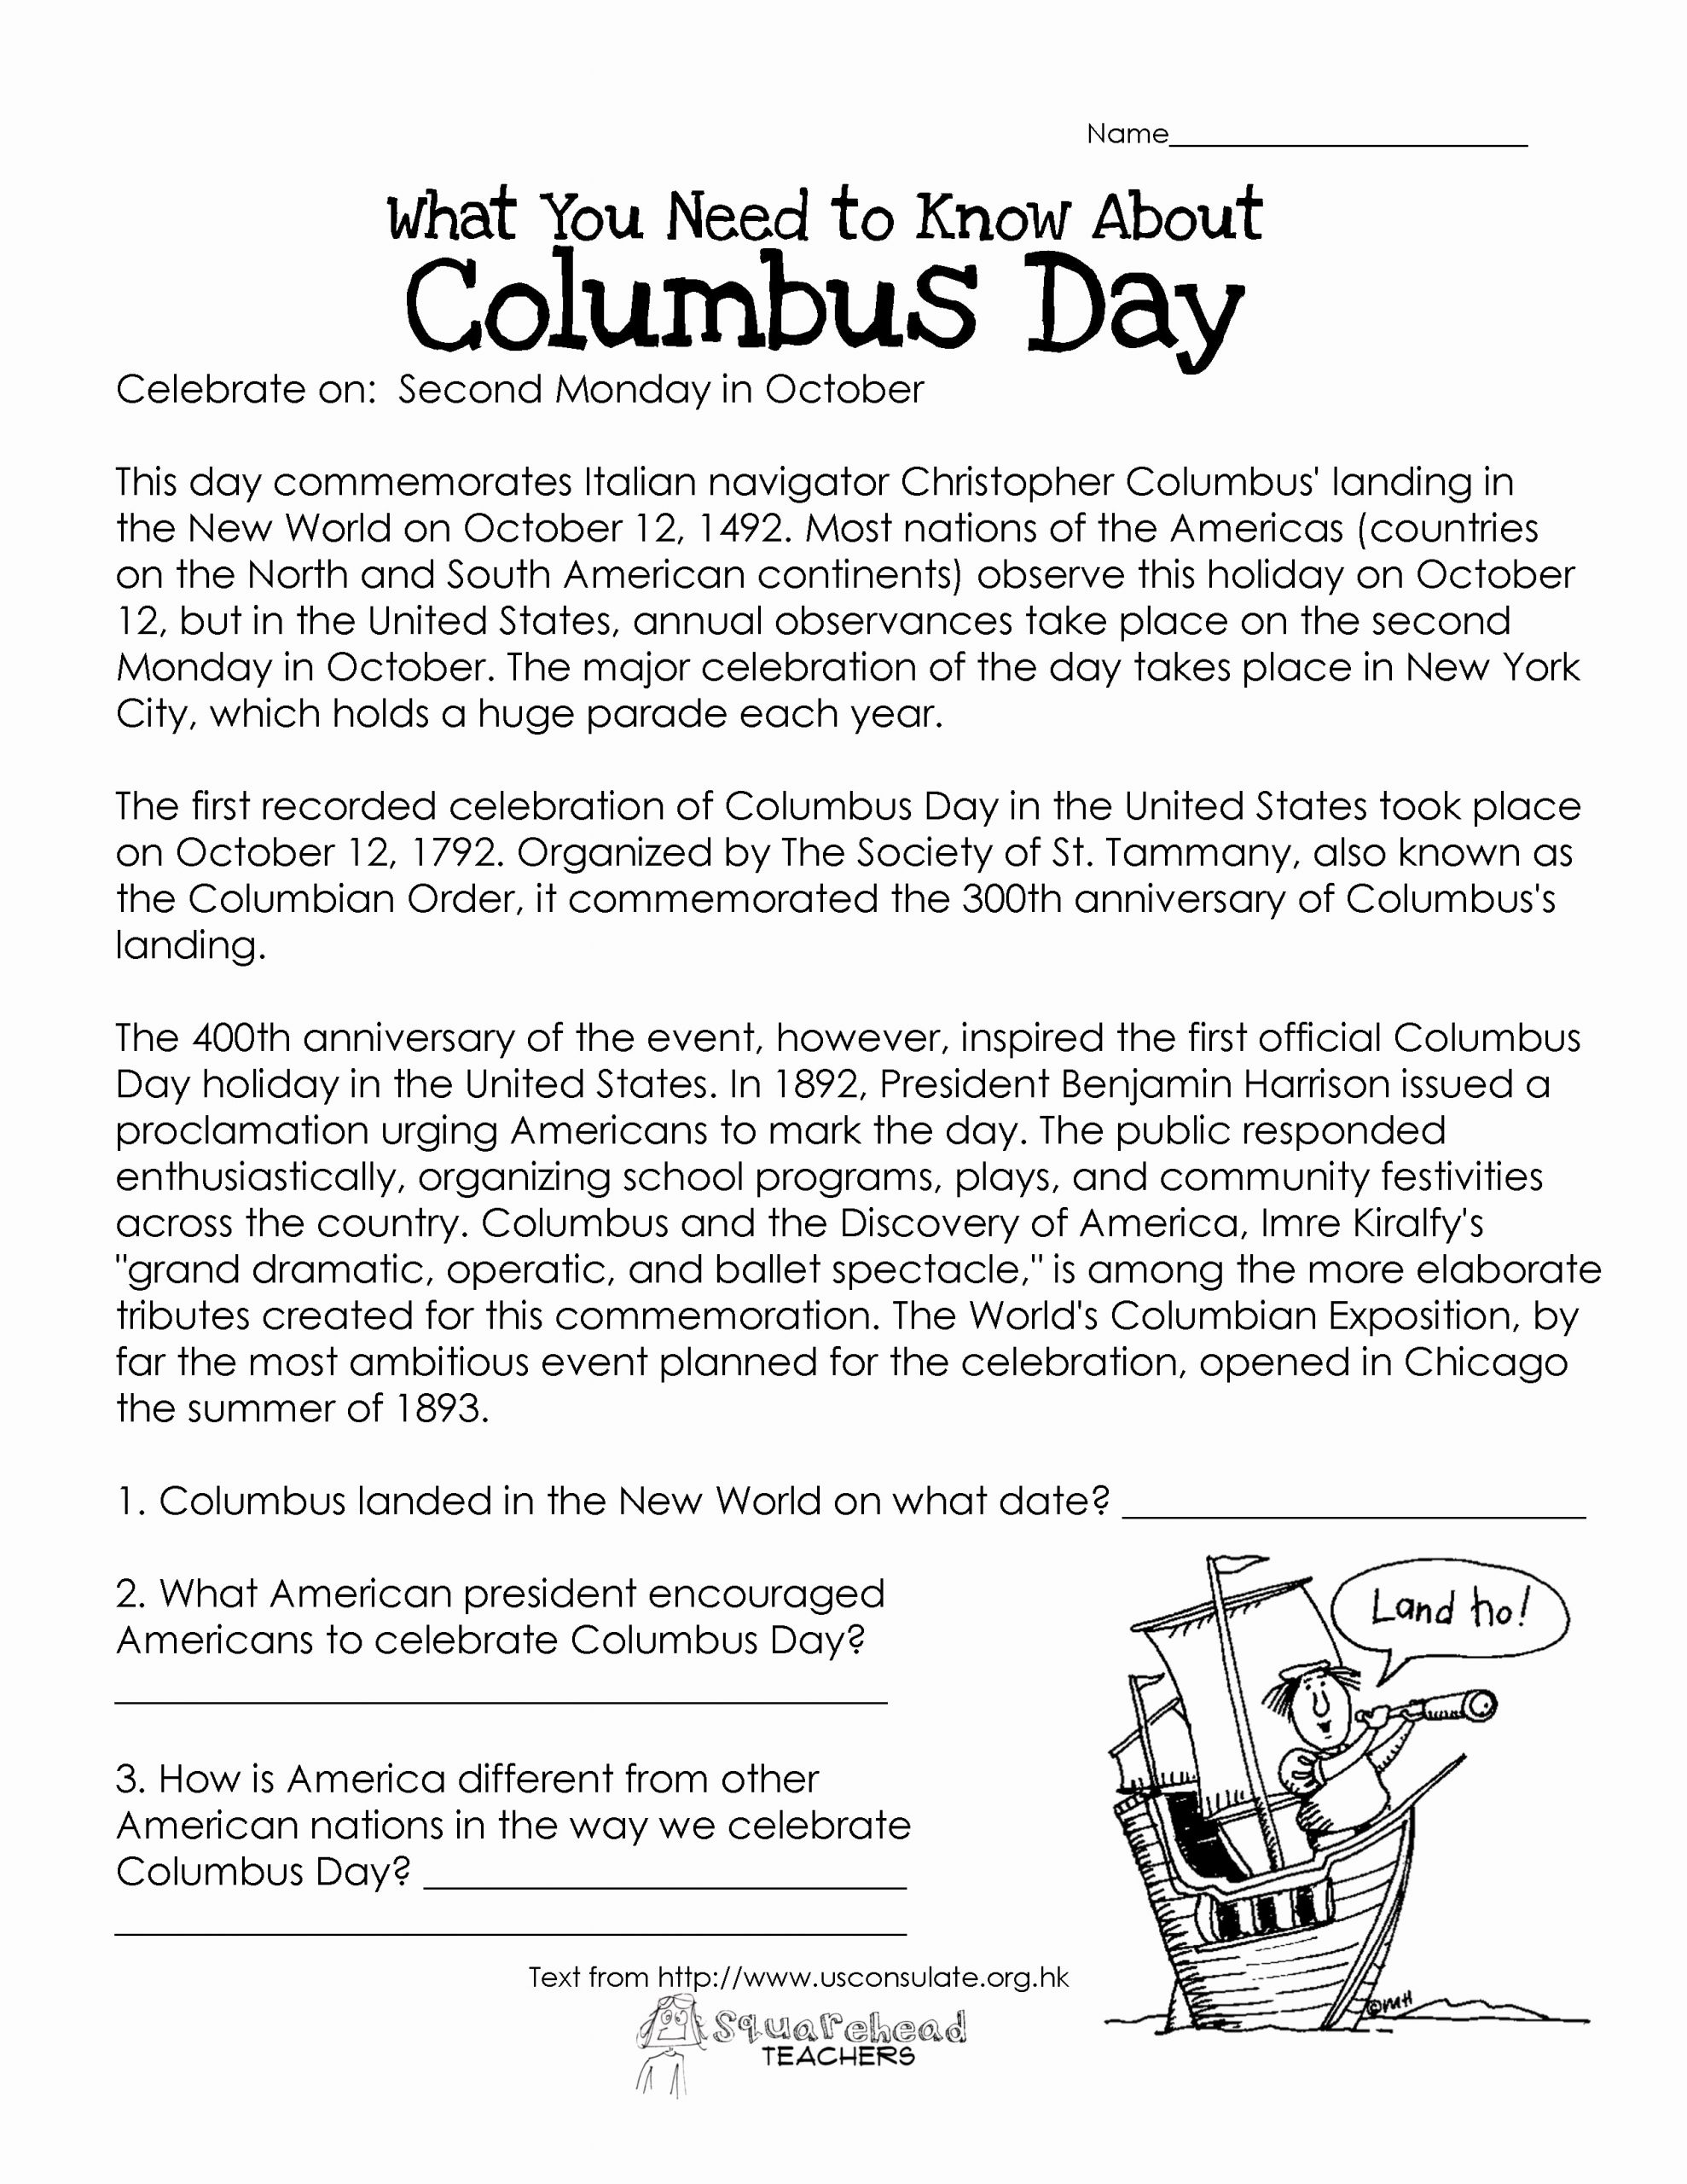 Free social Studies Worksheets for Middle School then Here S An Easy Free Prehension Worksheet About the History Of Col…